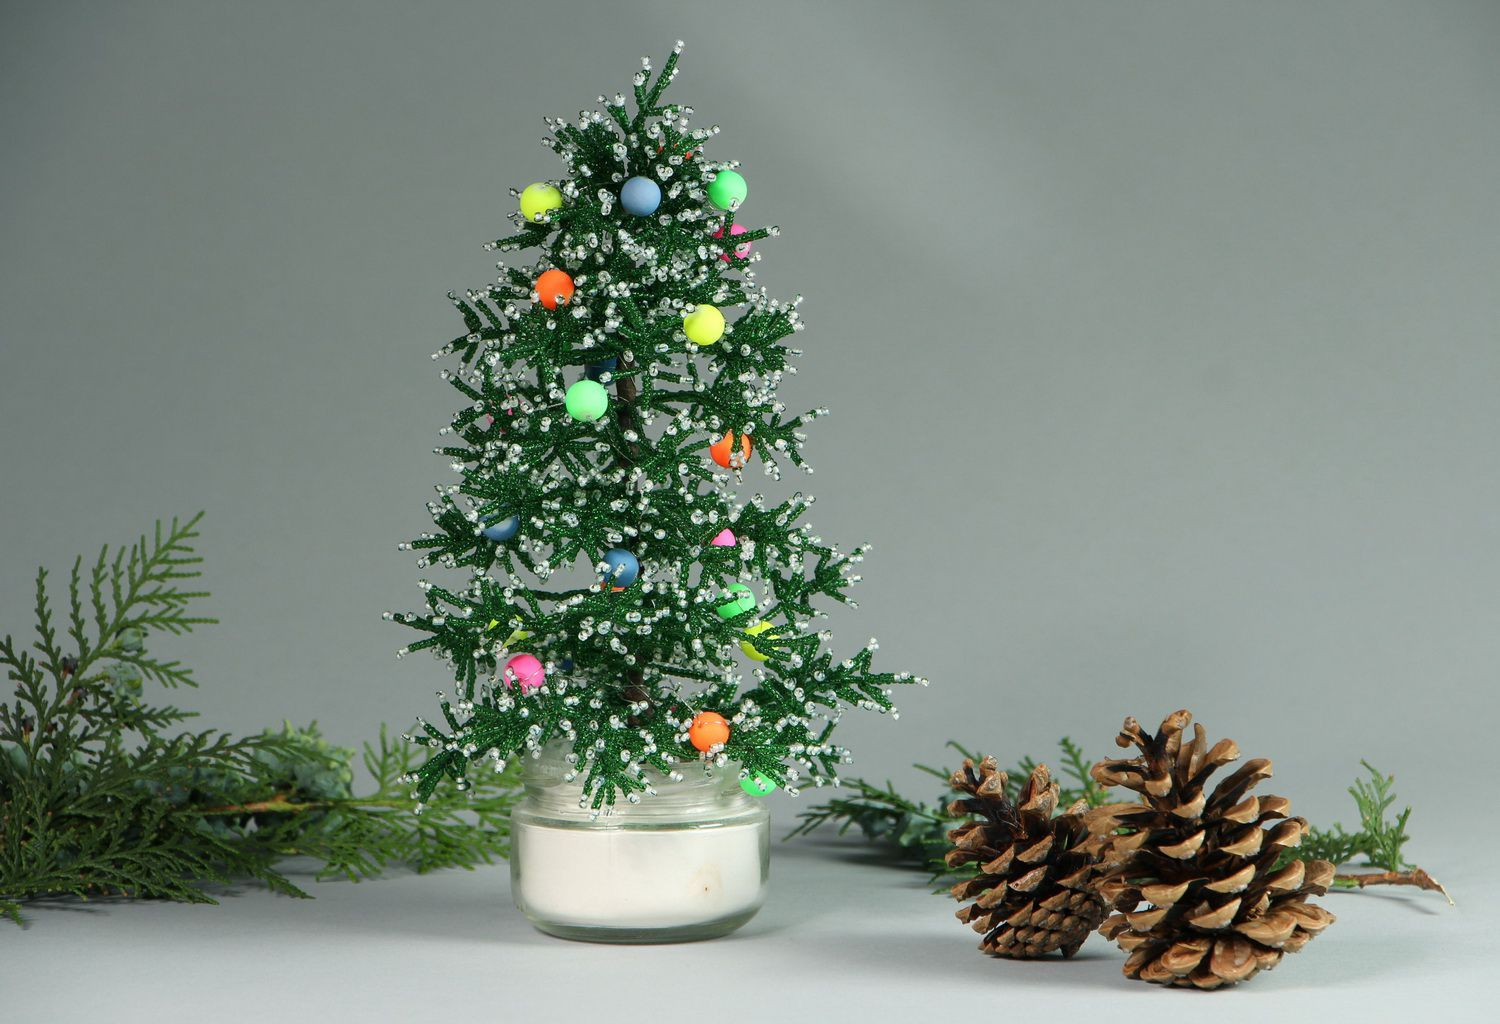 Decorative Christmas tree for New Year photo 1